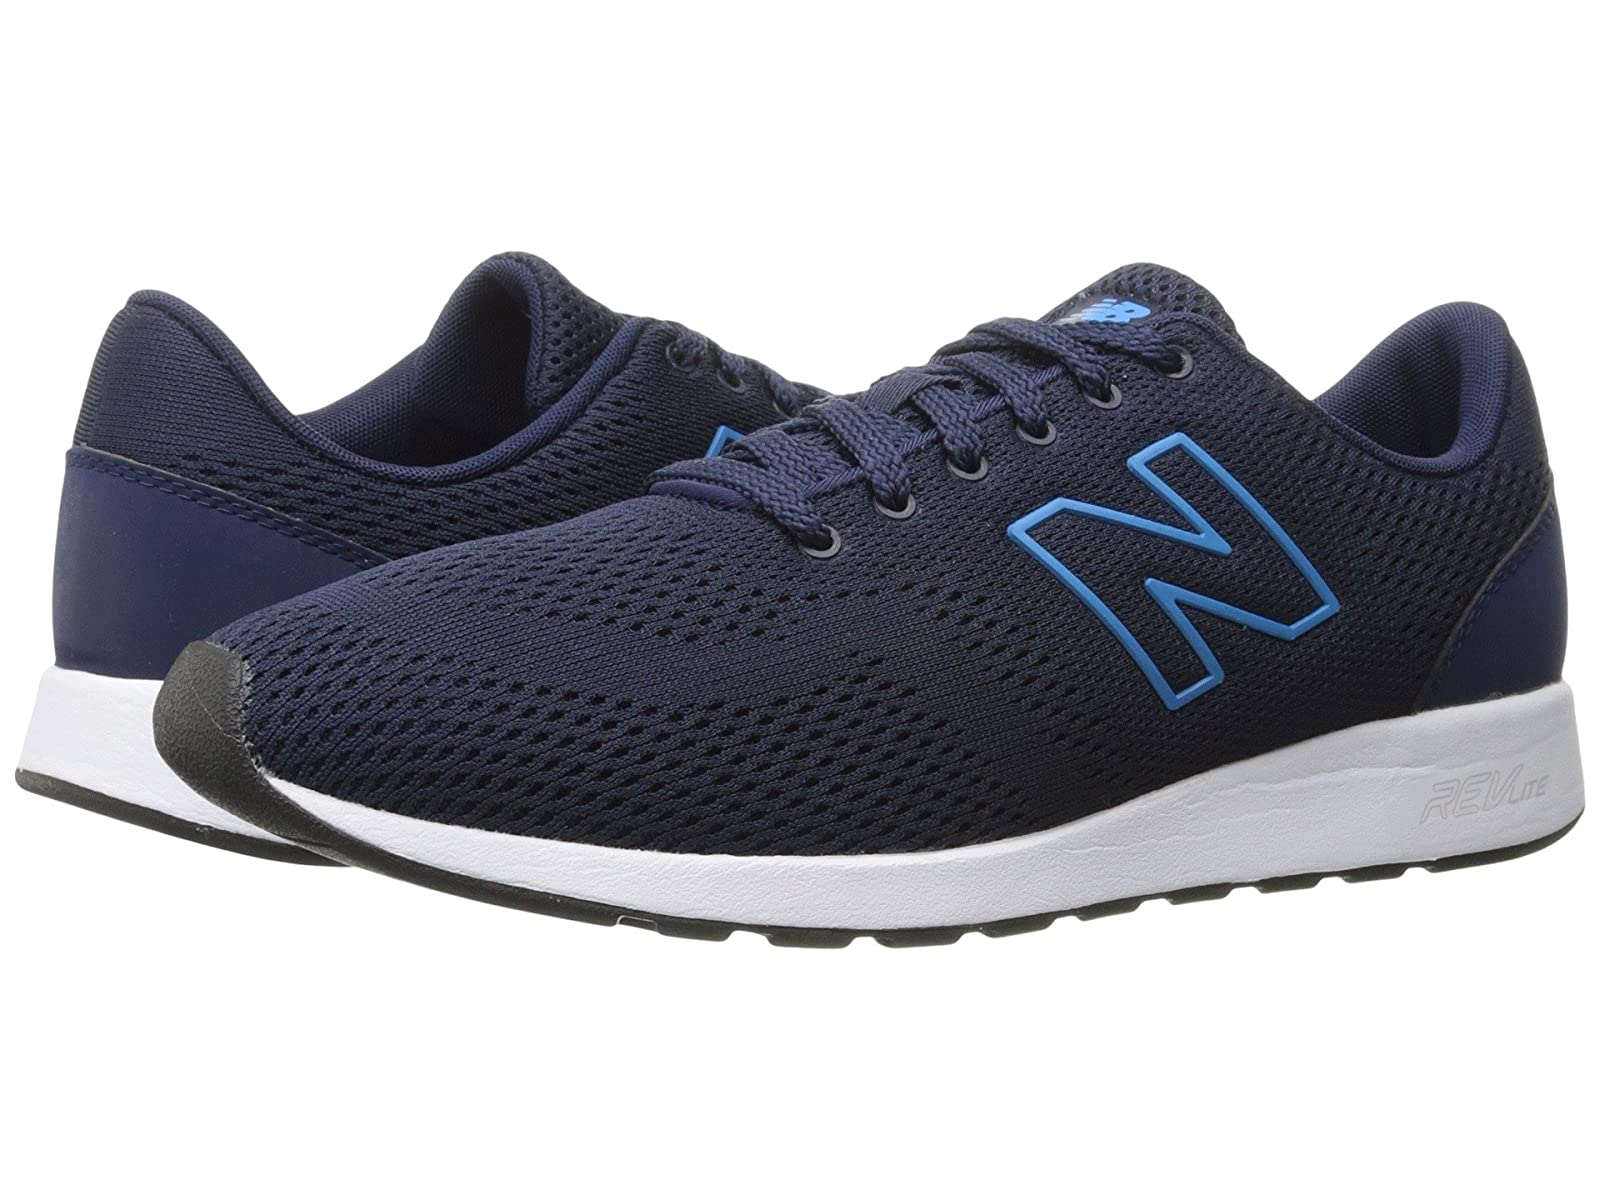 New Balance Classics MRL420Cheap and distinctive eye-catching shoes